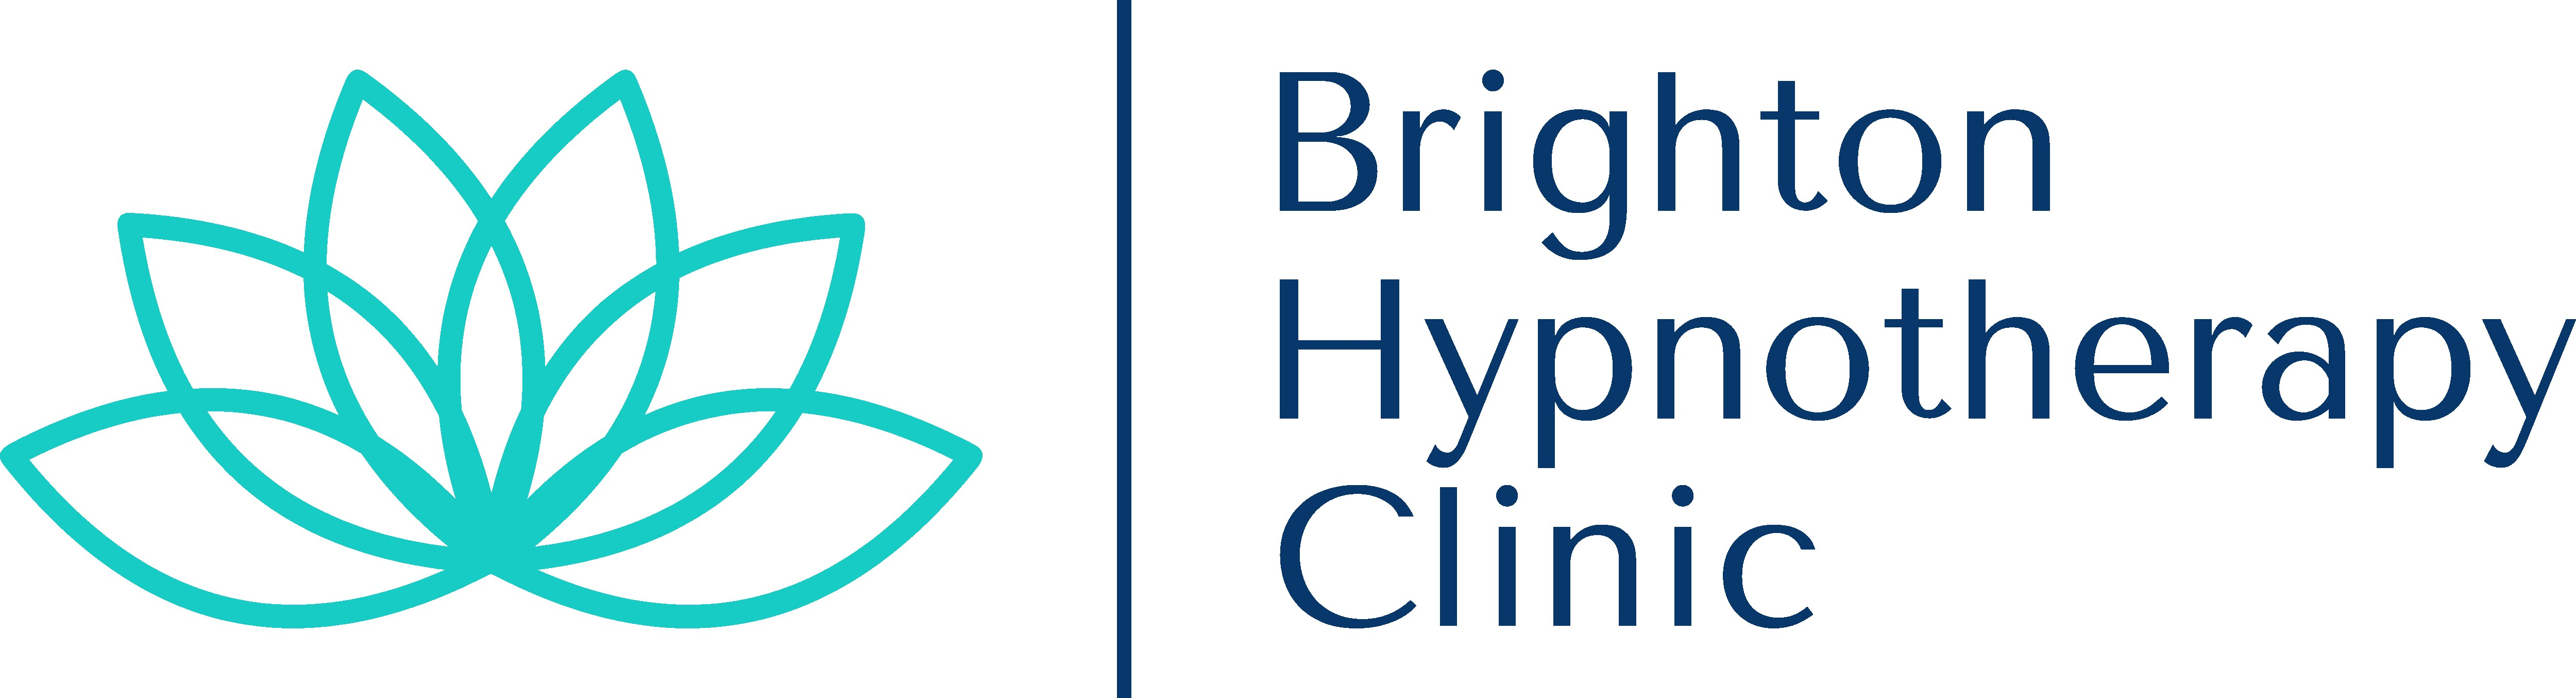 Brighton Hypnotherapy Clinic